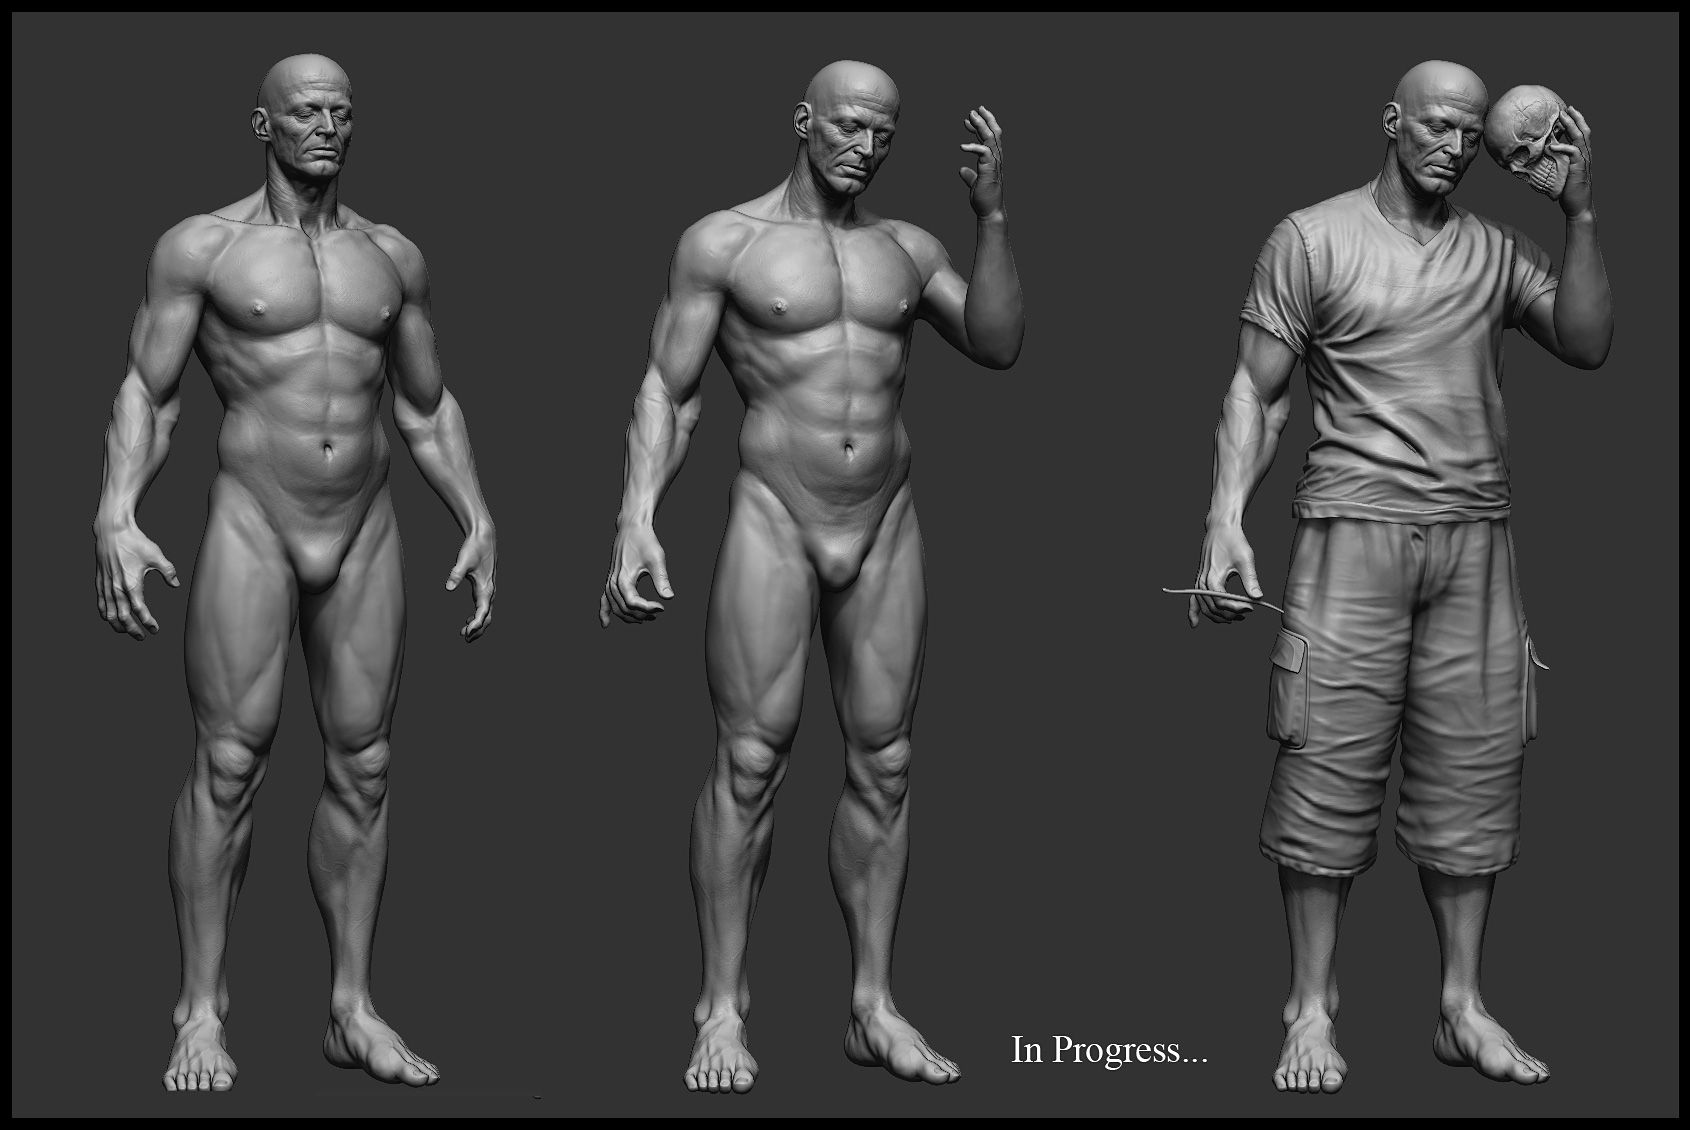 Pin by Olaf Pożoga on sculpt | Pinterest | Sketchbooks, ZBrush and ...